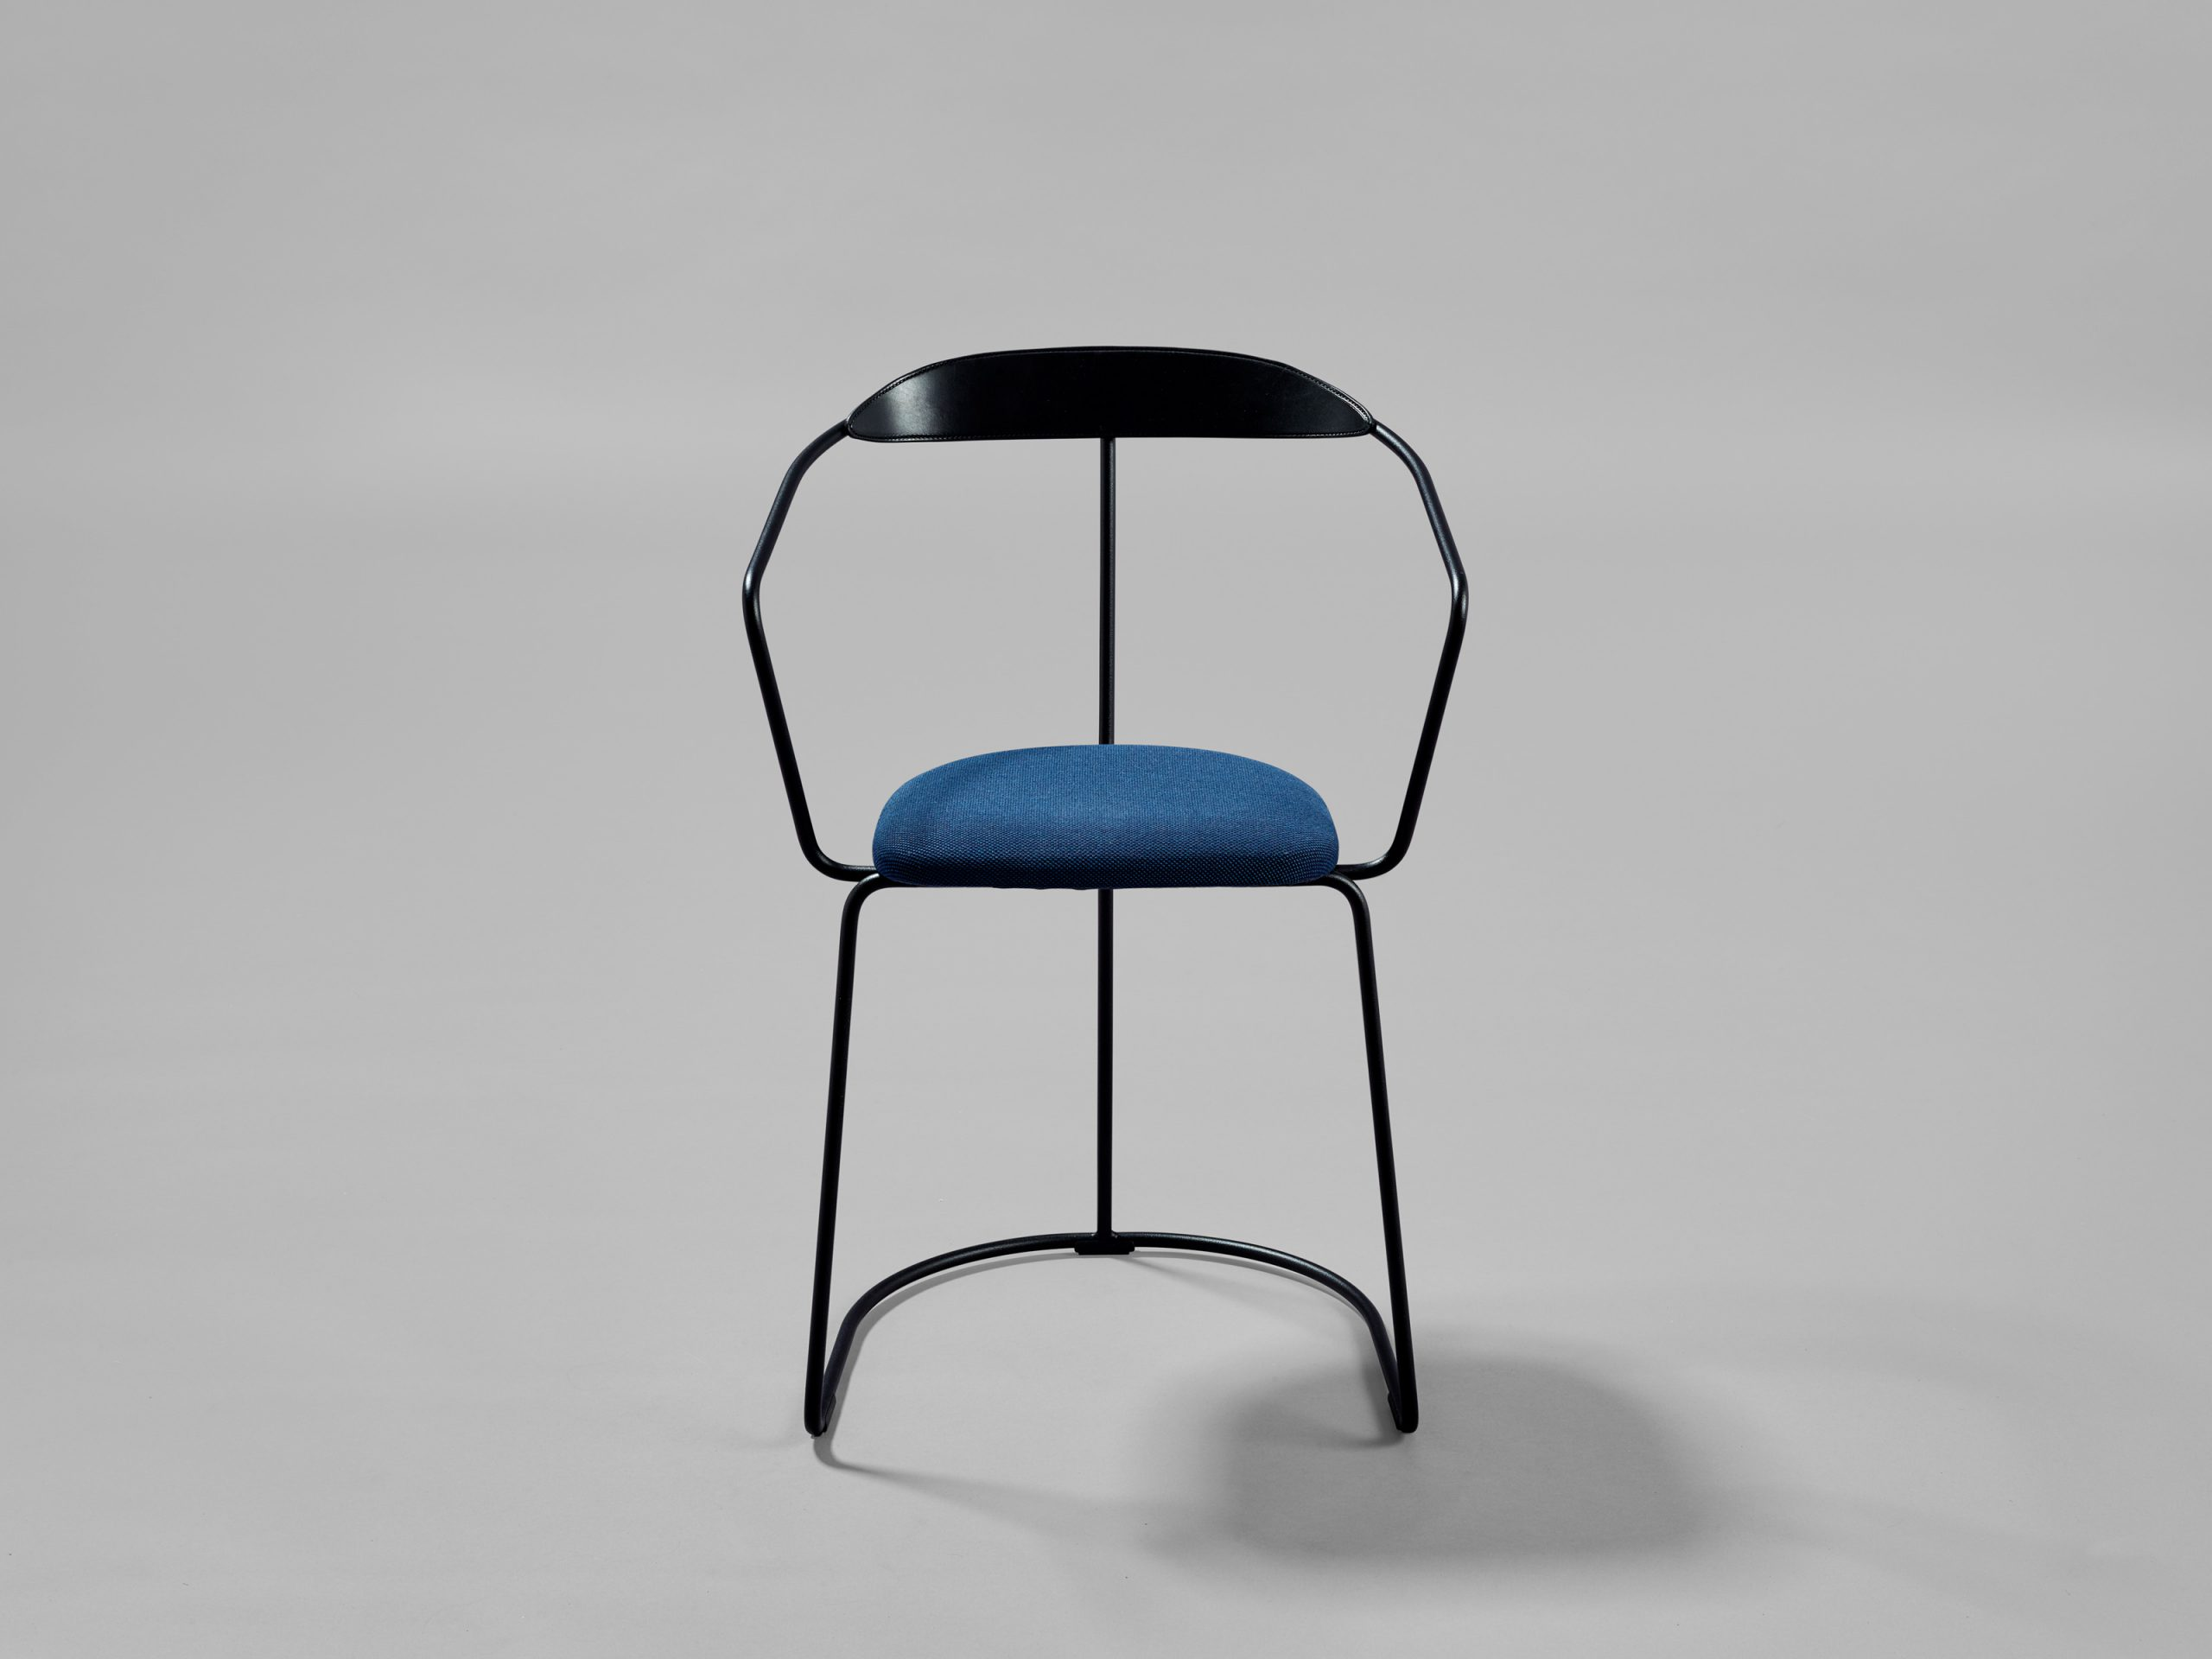 https://www.minustio.se/wp-content/uploads/2021/03/Ghost-chair-450mm-black-upholstered-blue-fabric_web-scaled.jpg